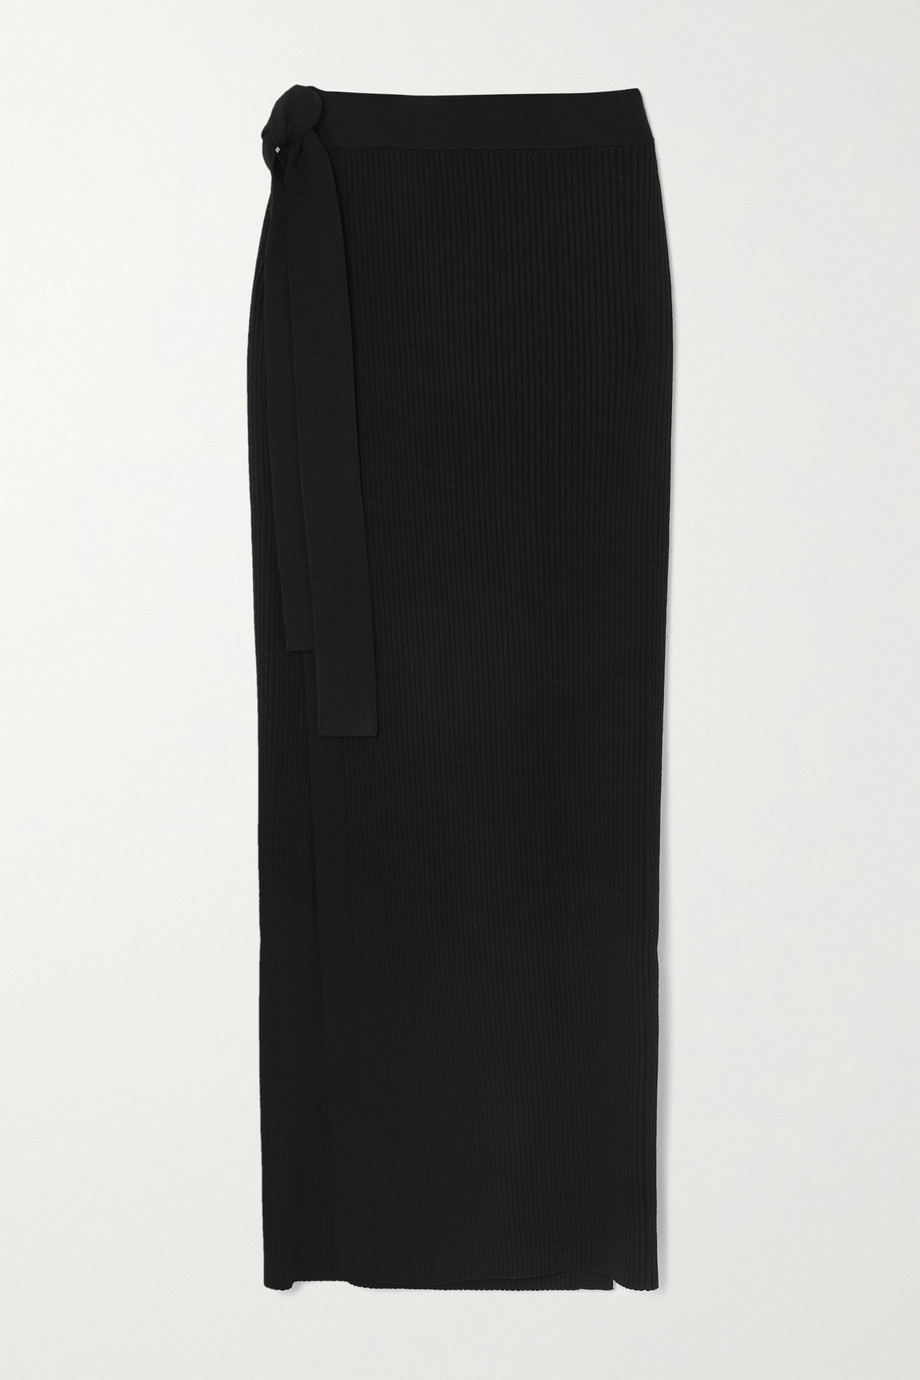 BY MALENE BIRGER Fauris ribbed-knit midi skirt